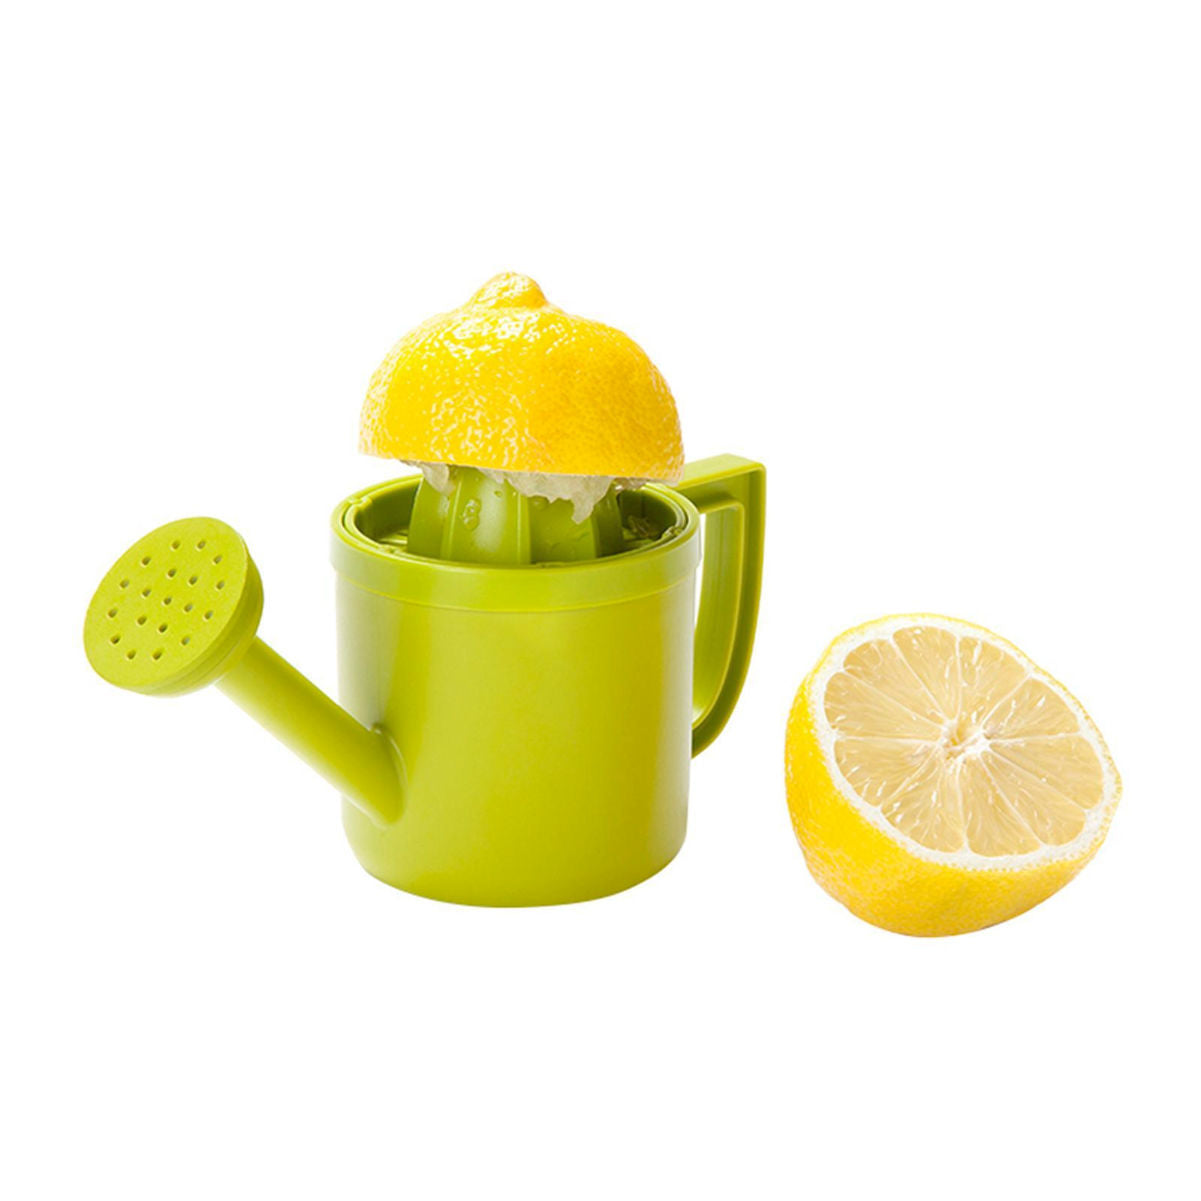 Peleg Design Lemoniere Juicer